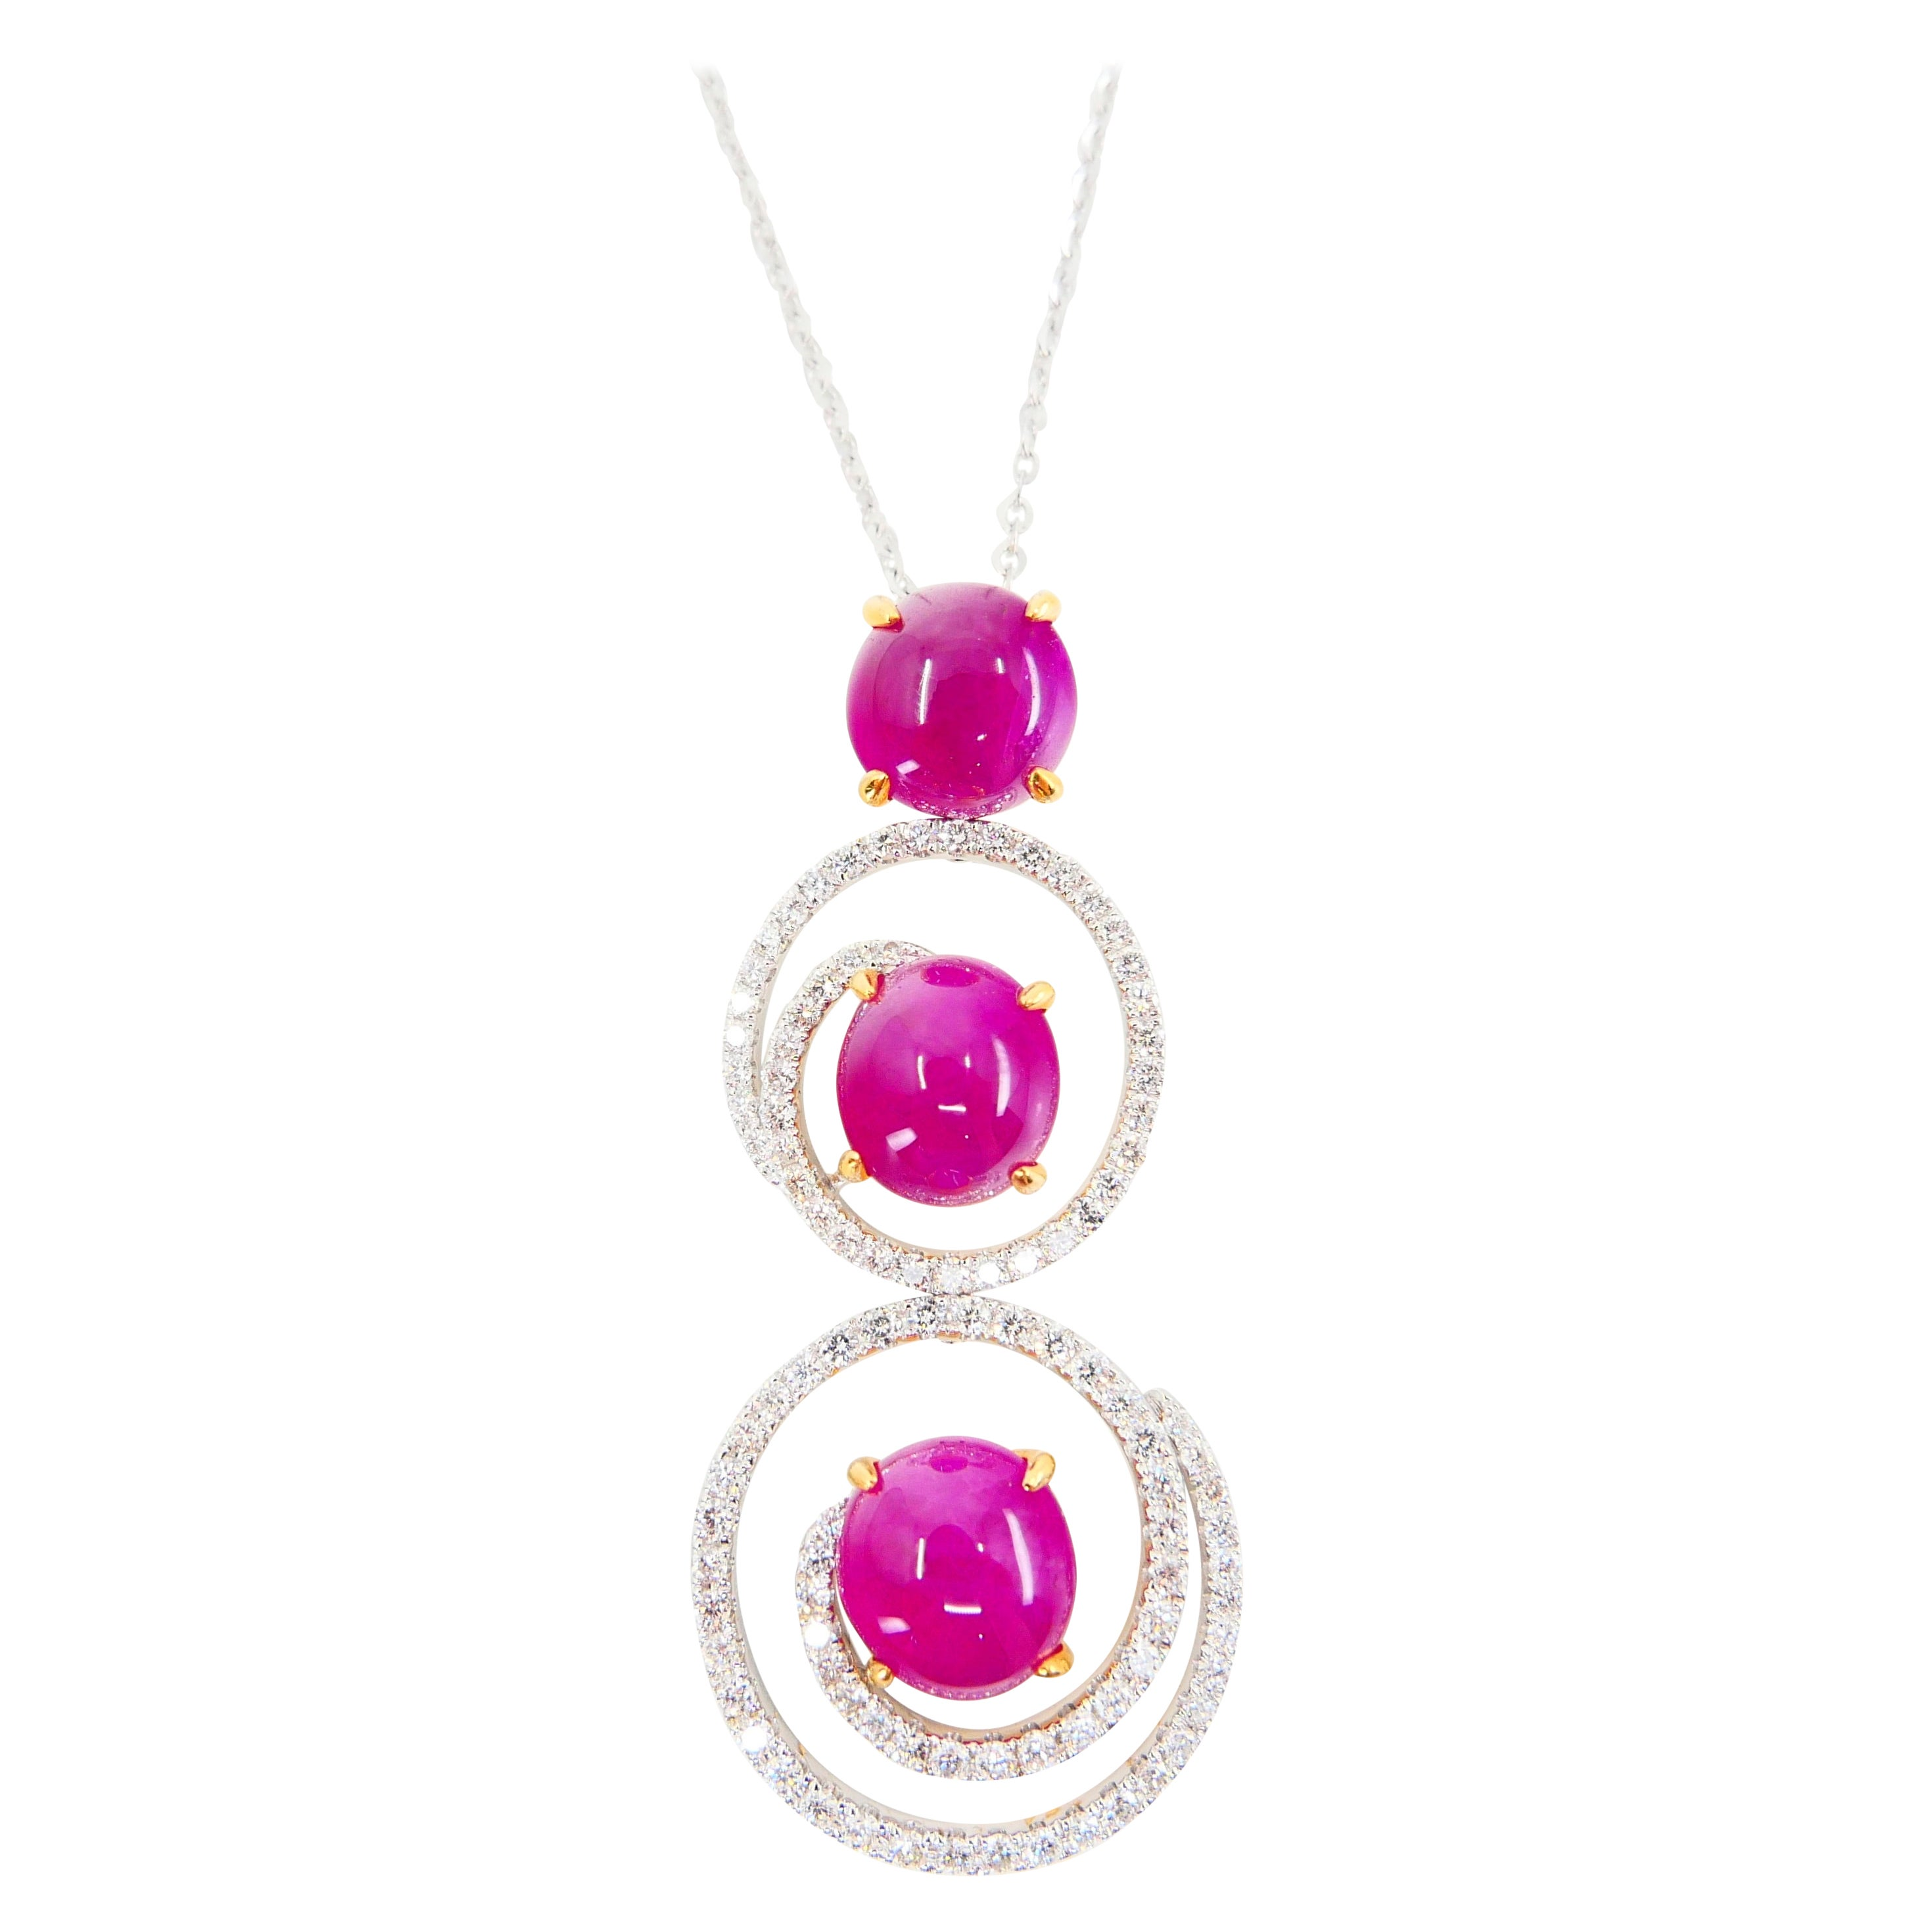 Burma Ruby 7.05 Carat and Diamond Pendant Drop Necklace, Elegant Design